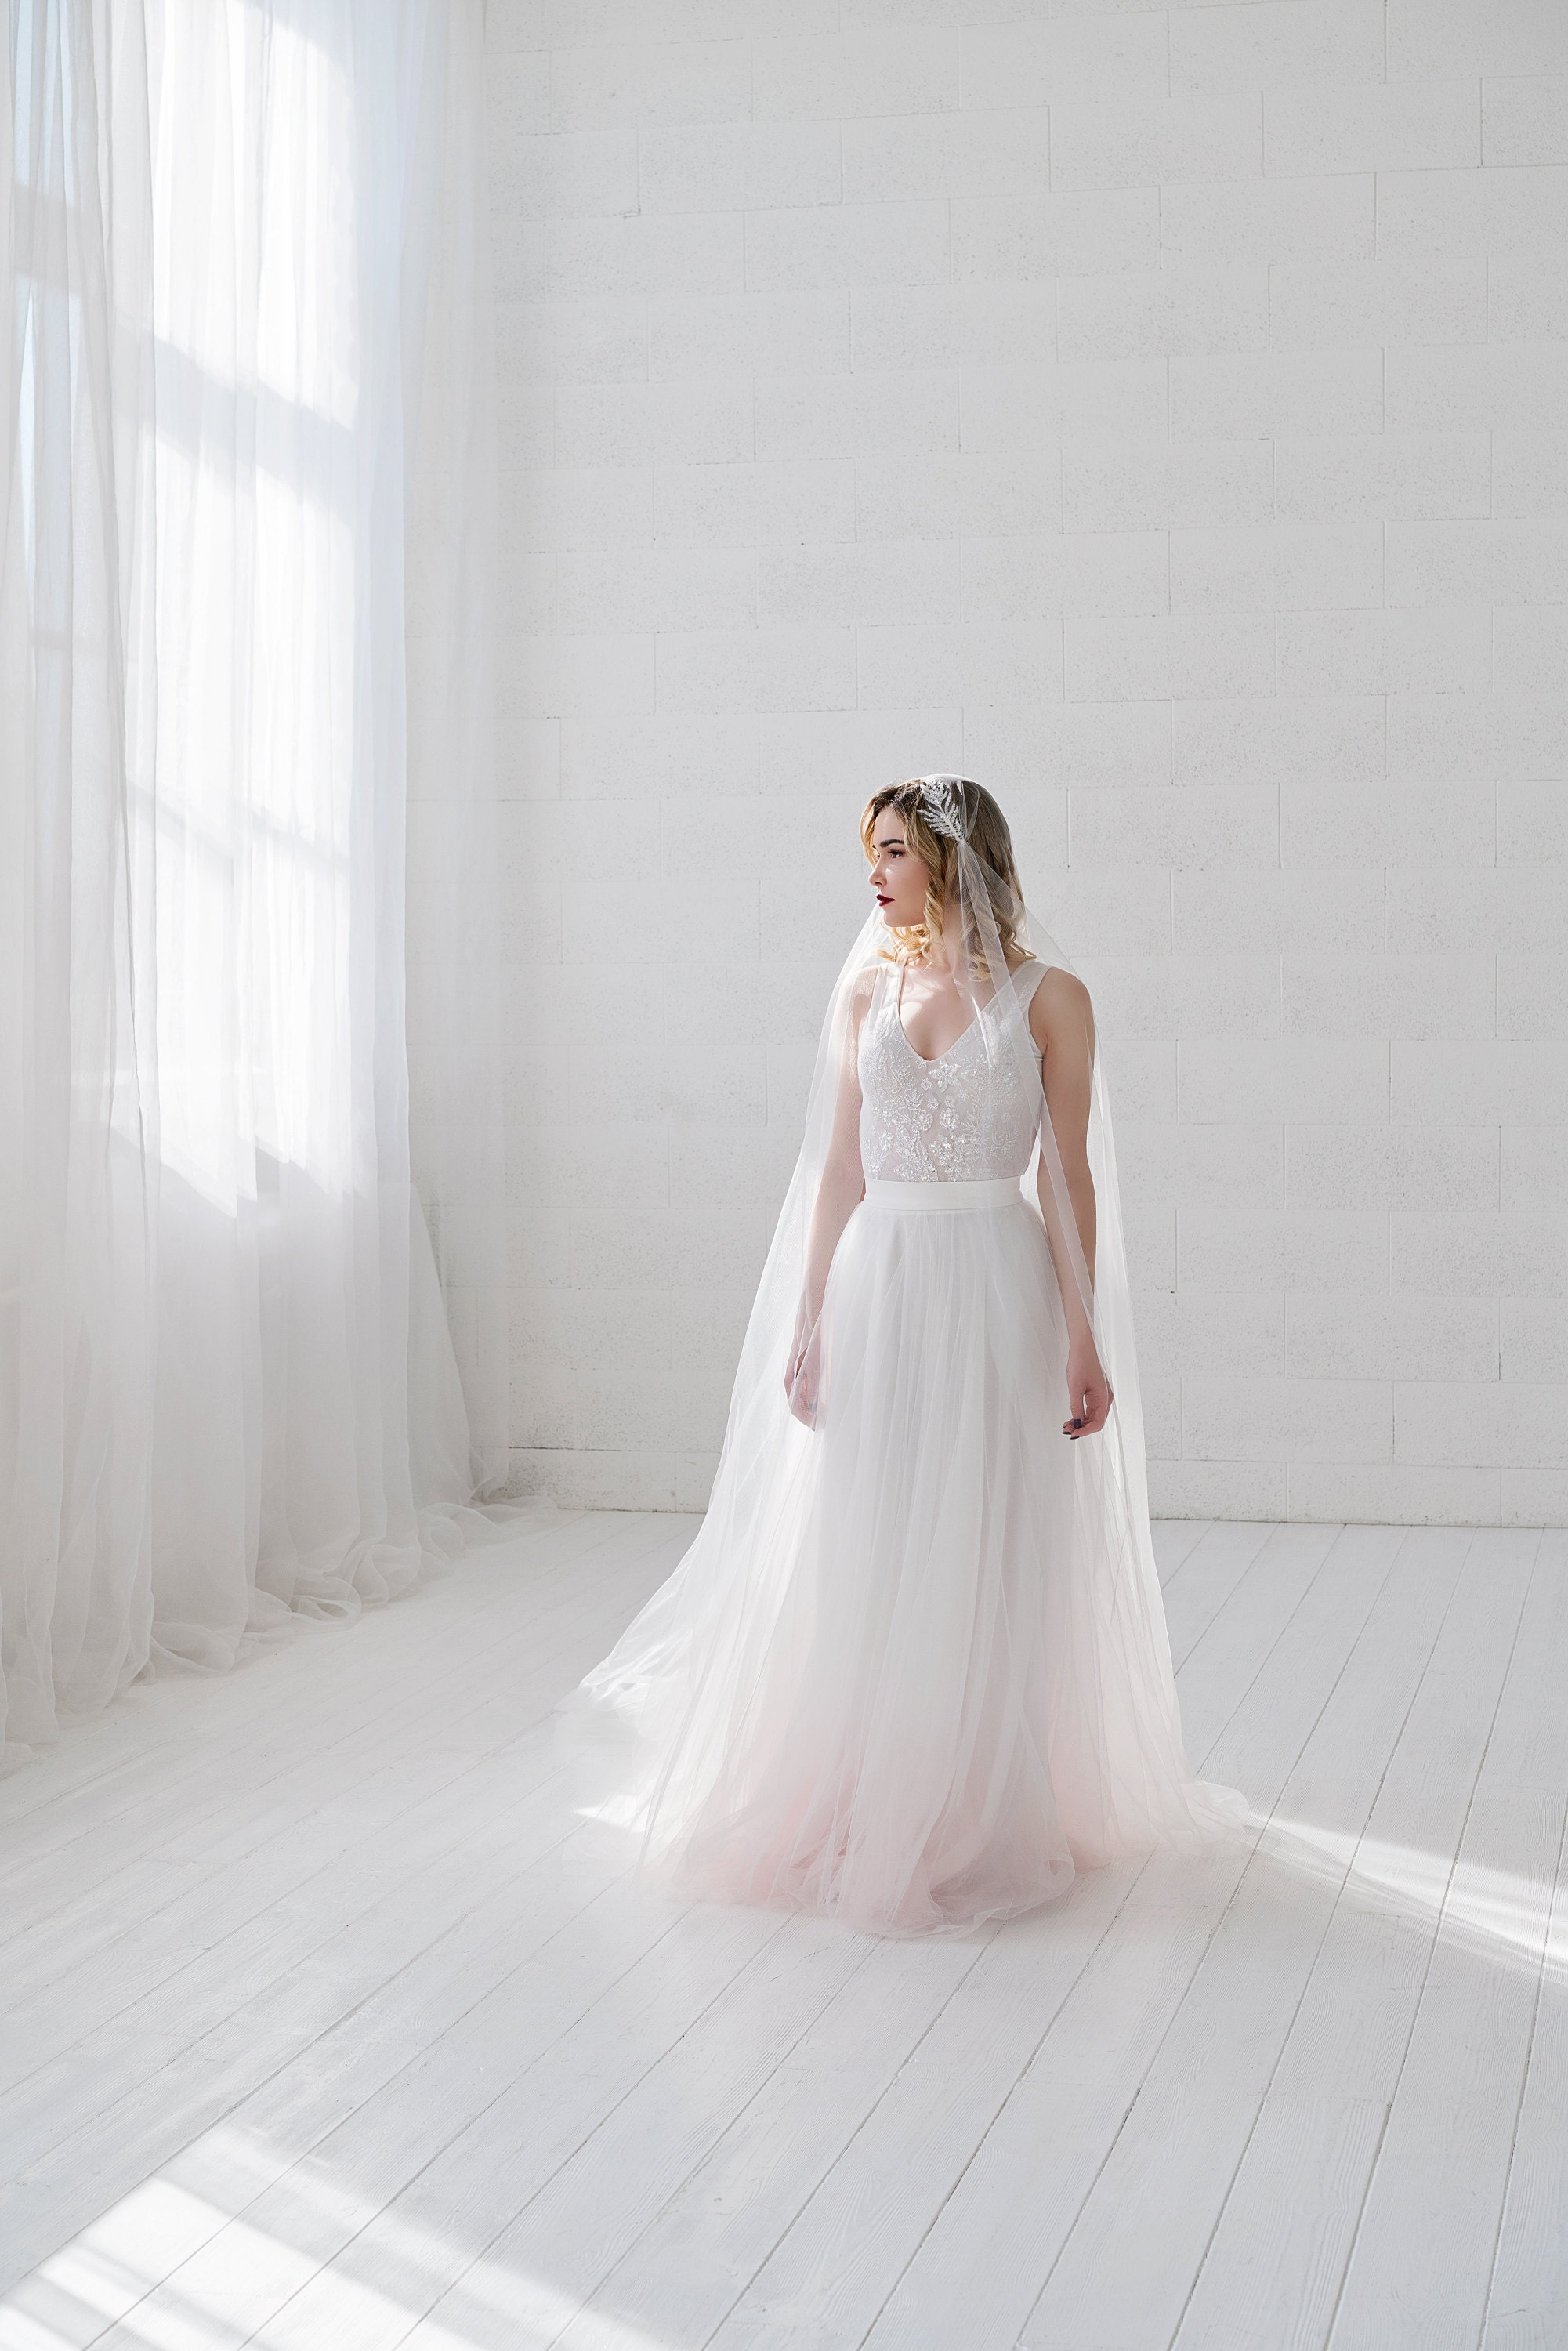 Helene skirt and veil made in italian tulle (ivory and a deep blush dip dye on the skirt)